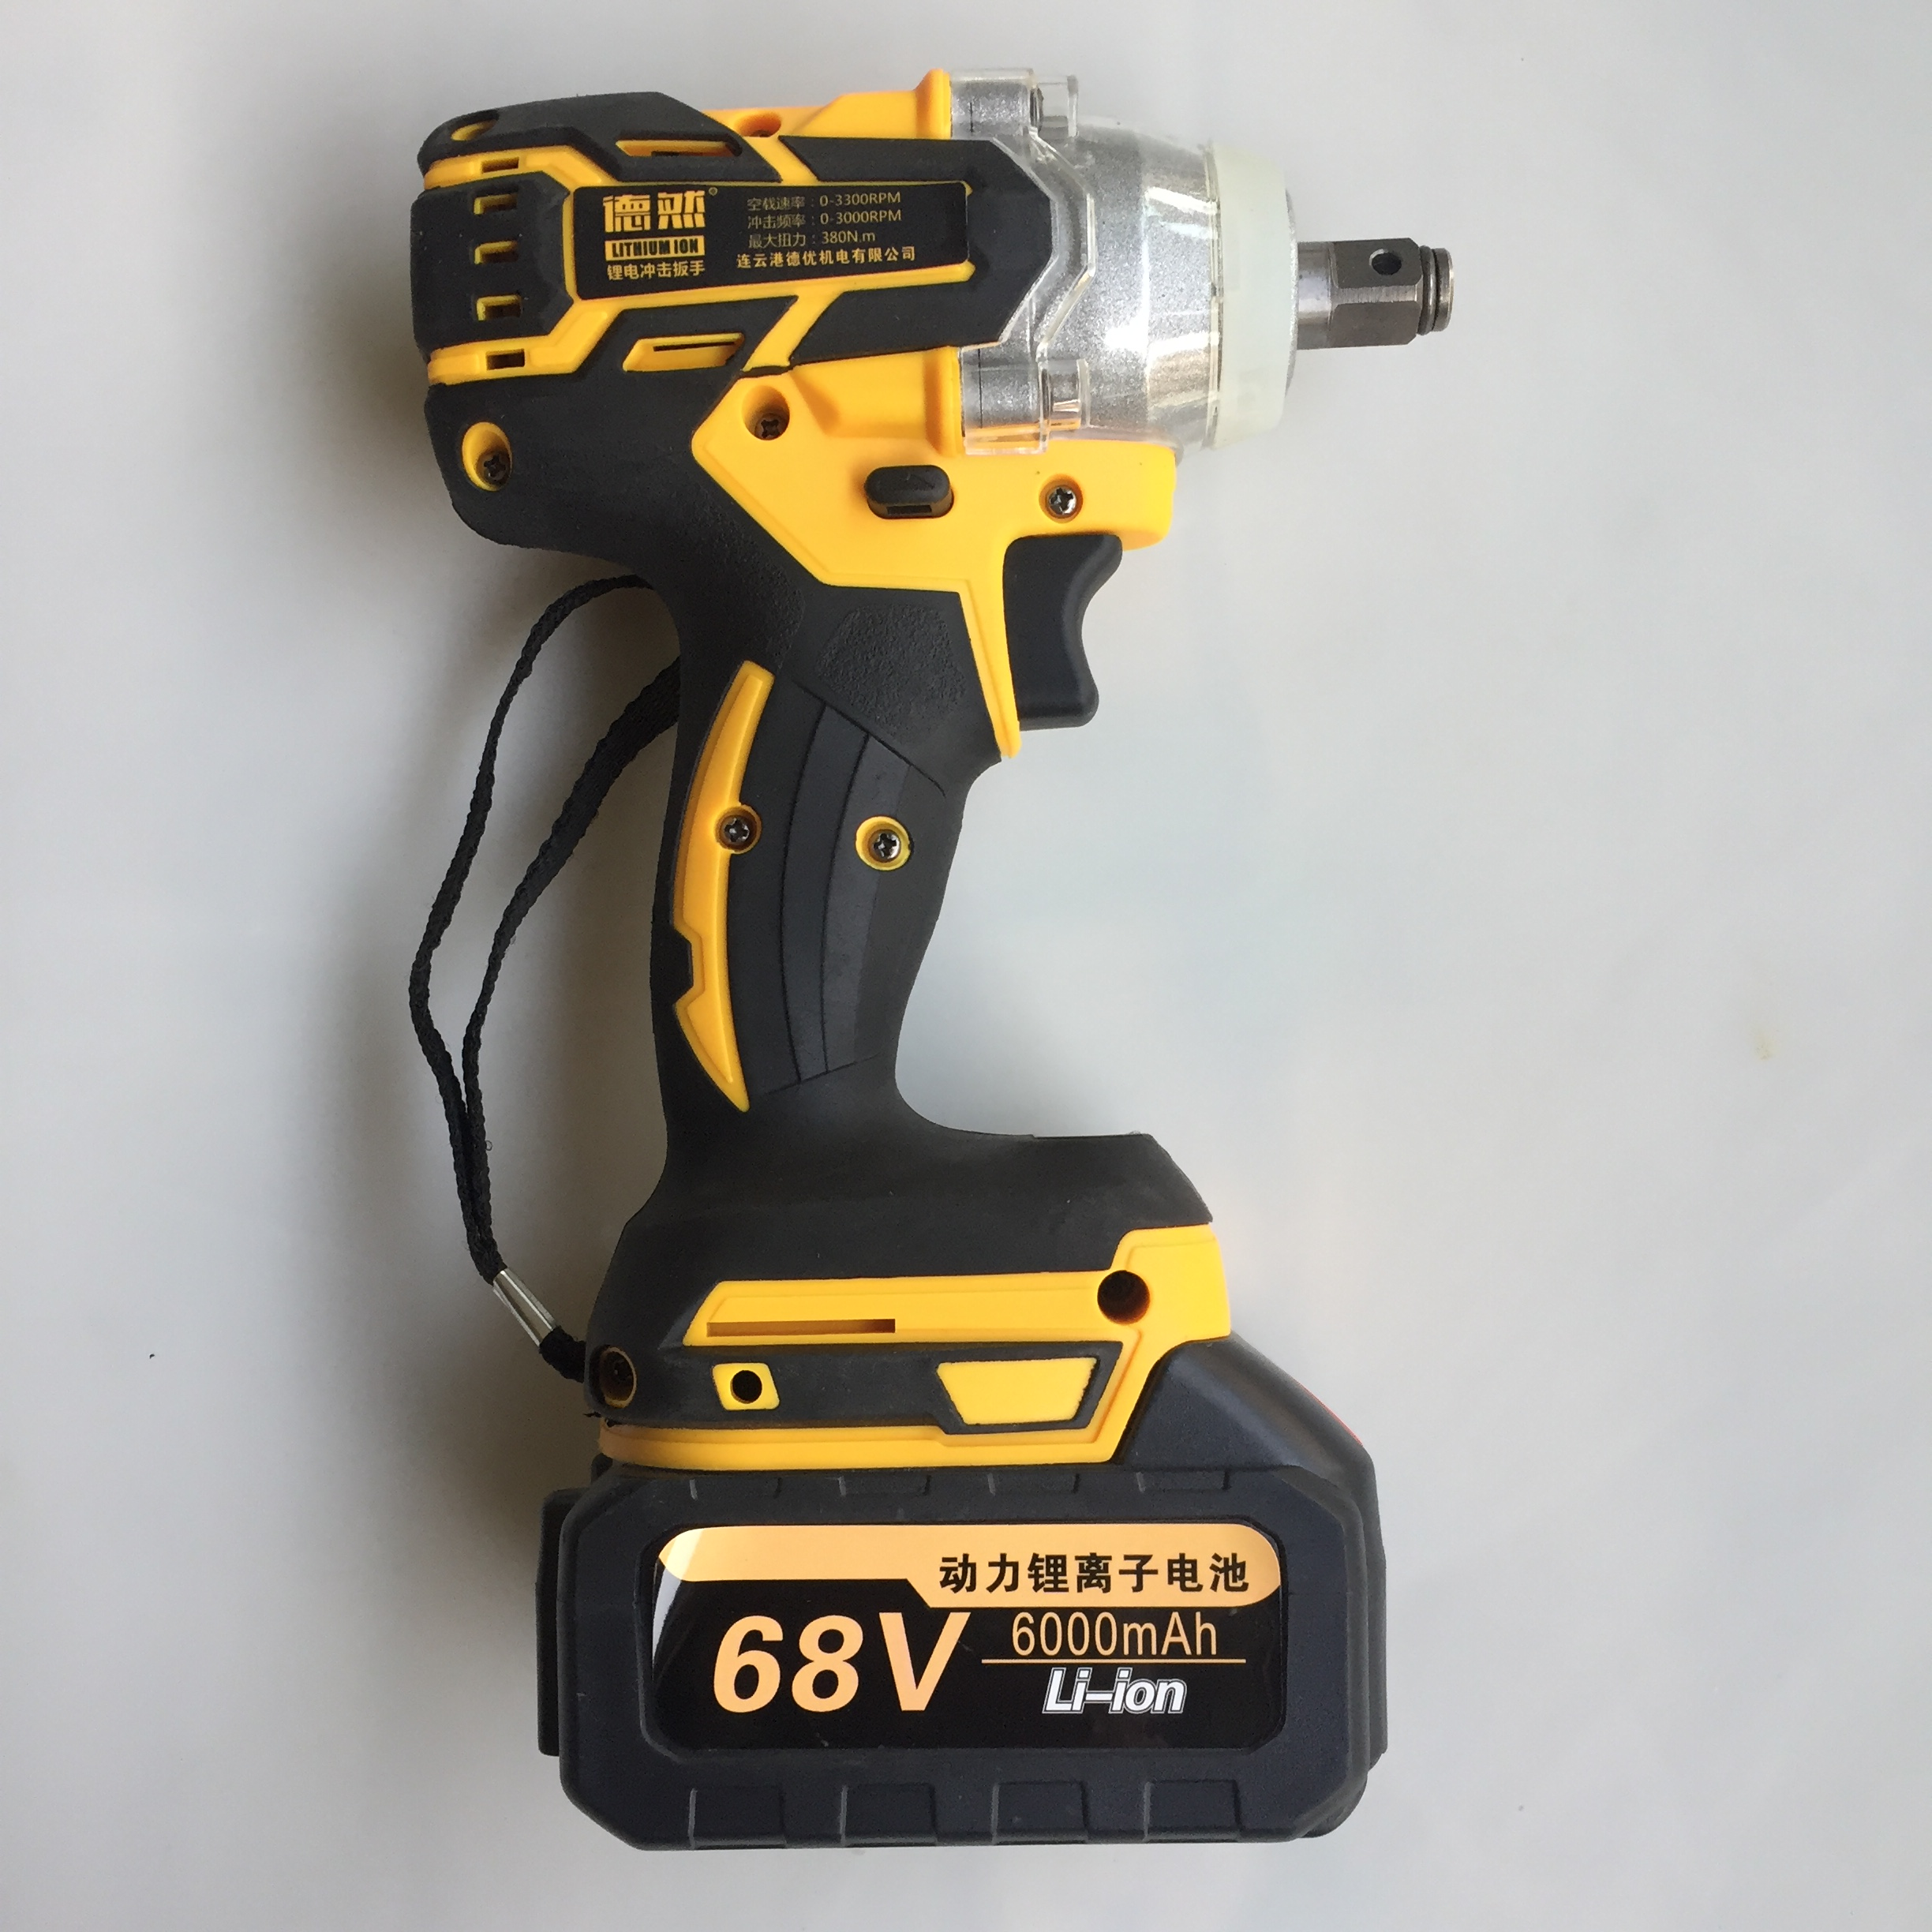 Brushless Cordless Electric Wrench Impact Socket Wrench 380N/M 6000mAh Li Battery Hand Drill Installation Power ToolsBrushless Cordless Electric Wrench Impact Socket Wrench 380N/M 6000mAh Li Battery Hand Drill Installation Power Tools